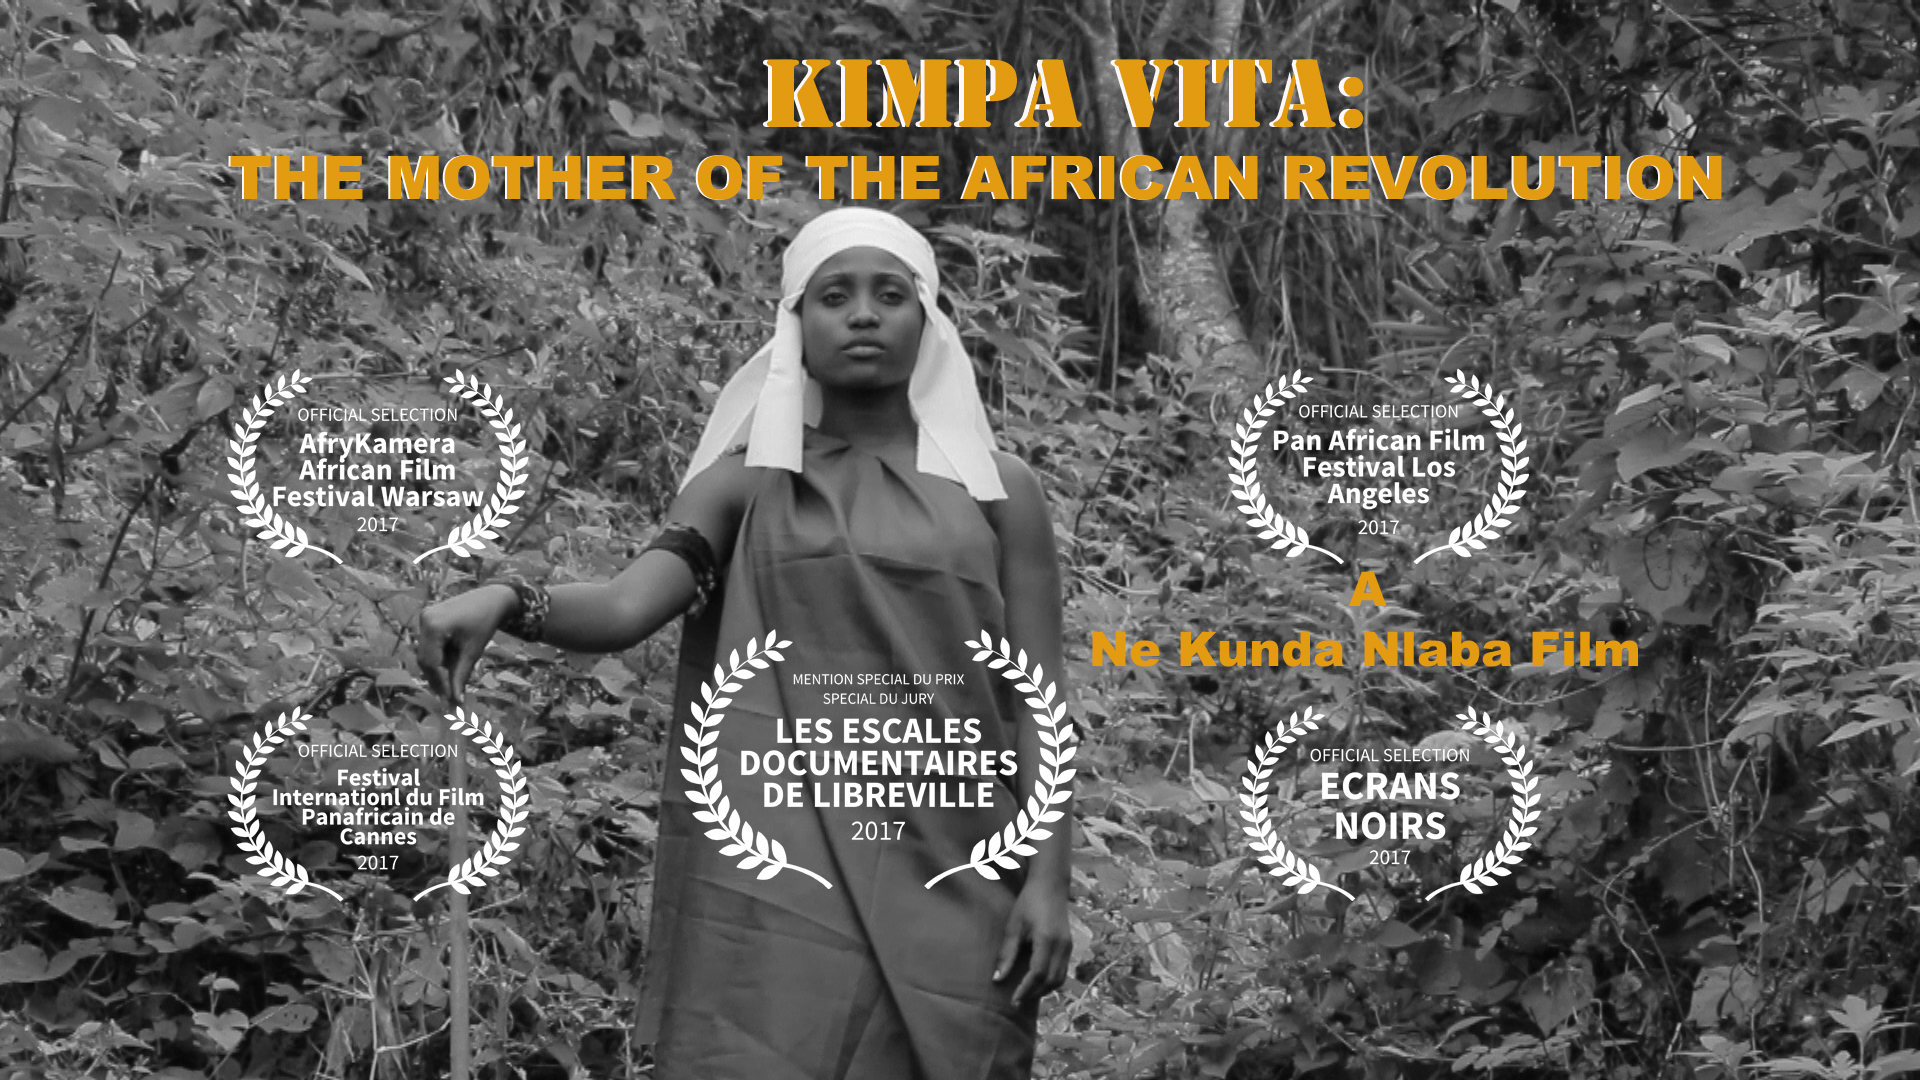 Kimpa Vita: The Mother of the African Revolution